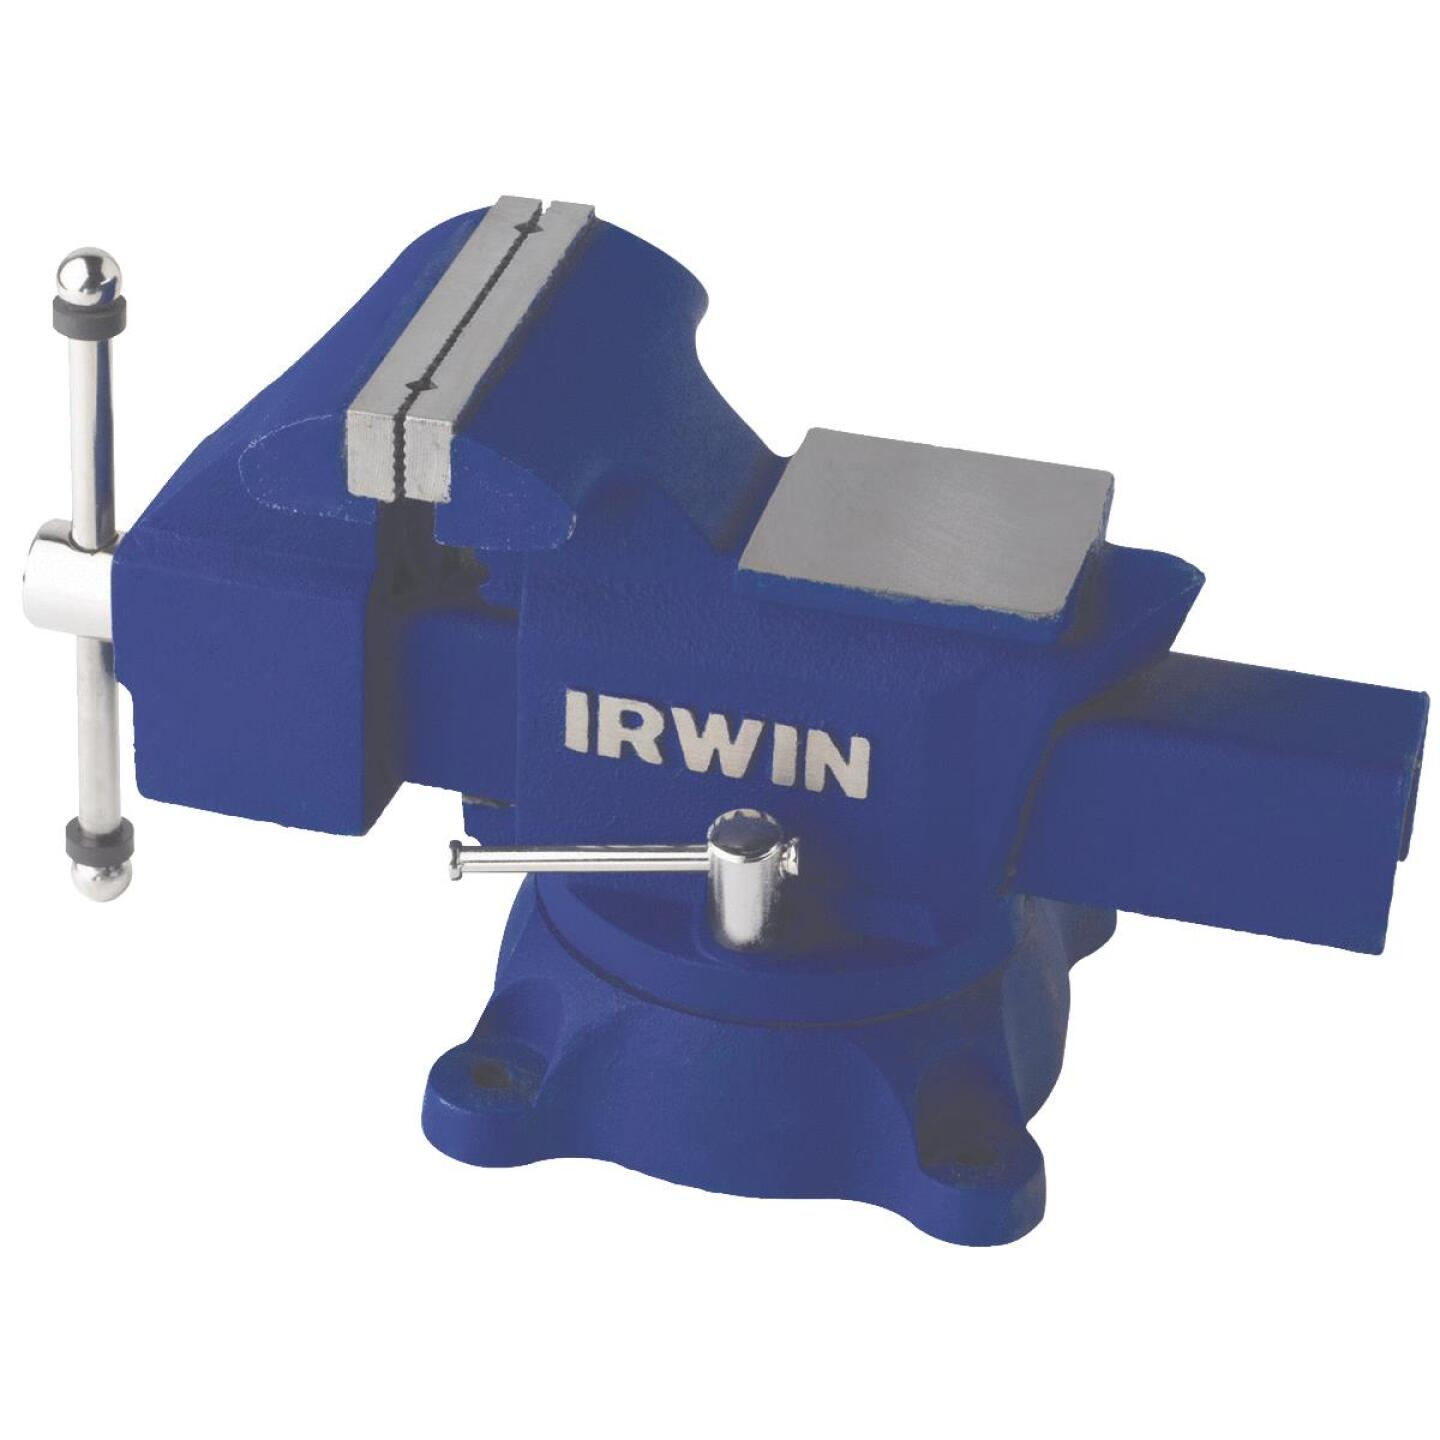 Irwin 4 In. Workshop Bench Vise Image 1